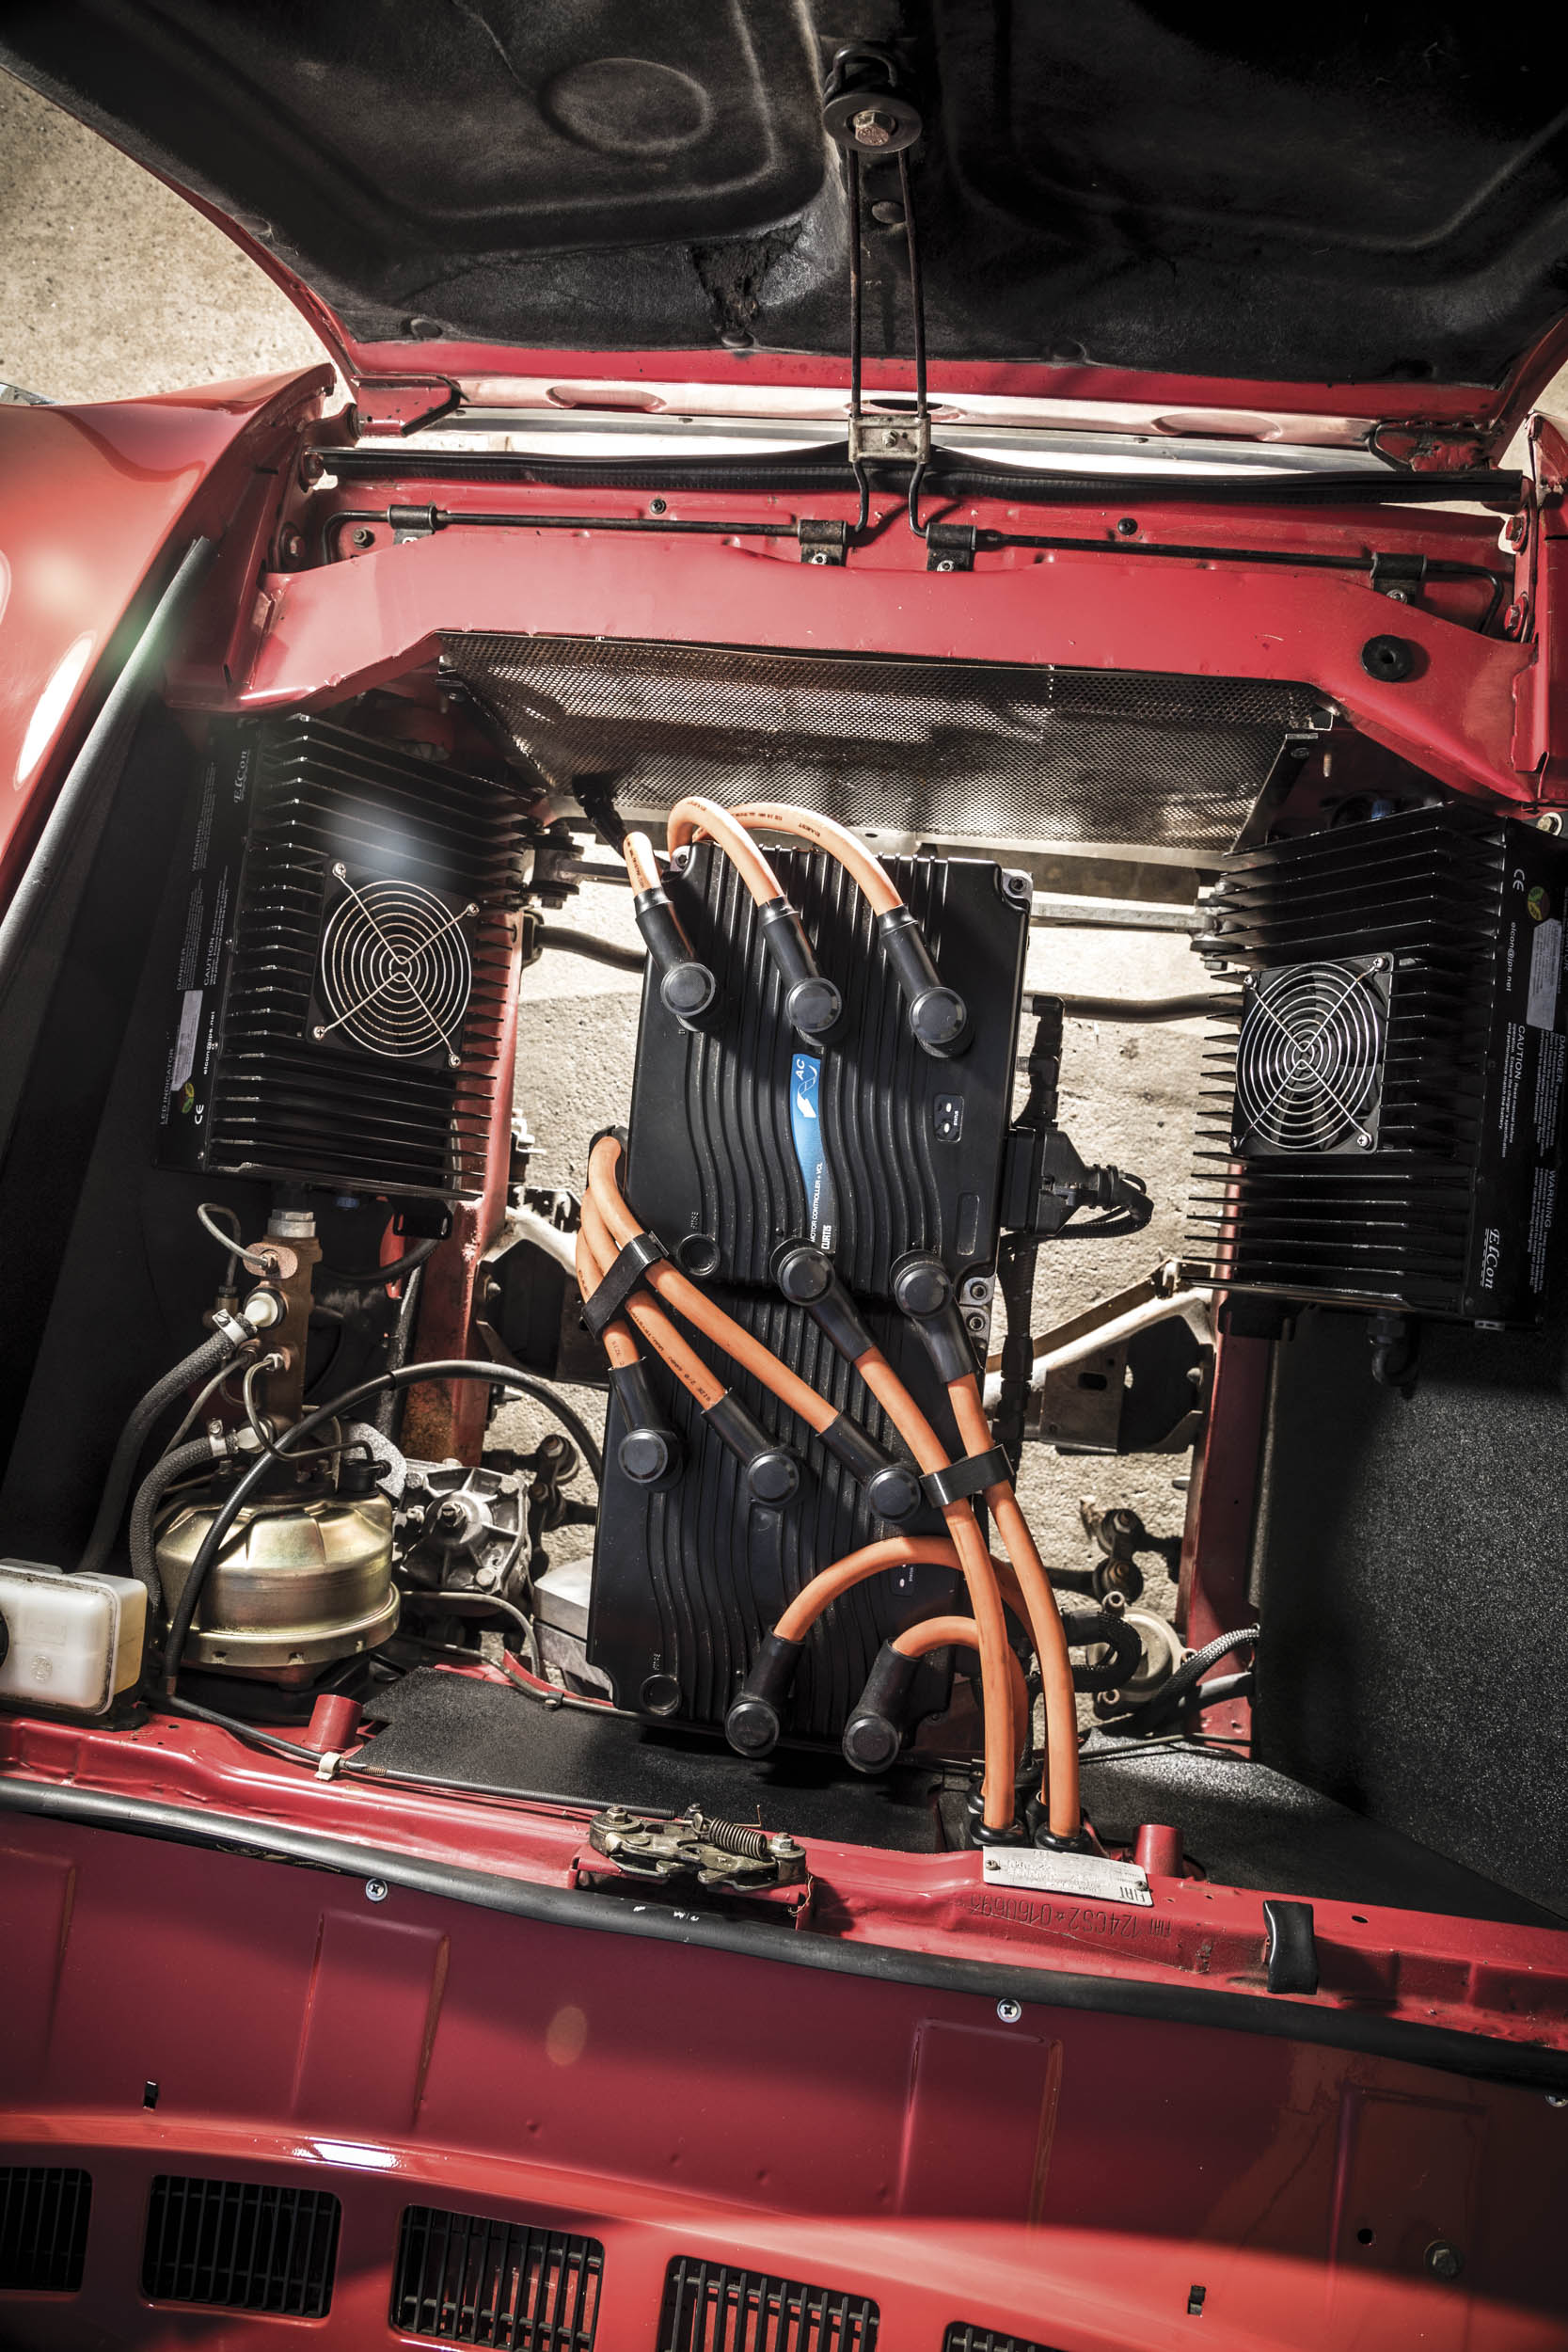 Under the hood of this Fiat 2000 are a pair of inverters with high-voltage cables standing in for spark-plug wires. The fans on either side cover the chargers.